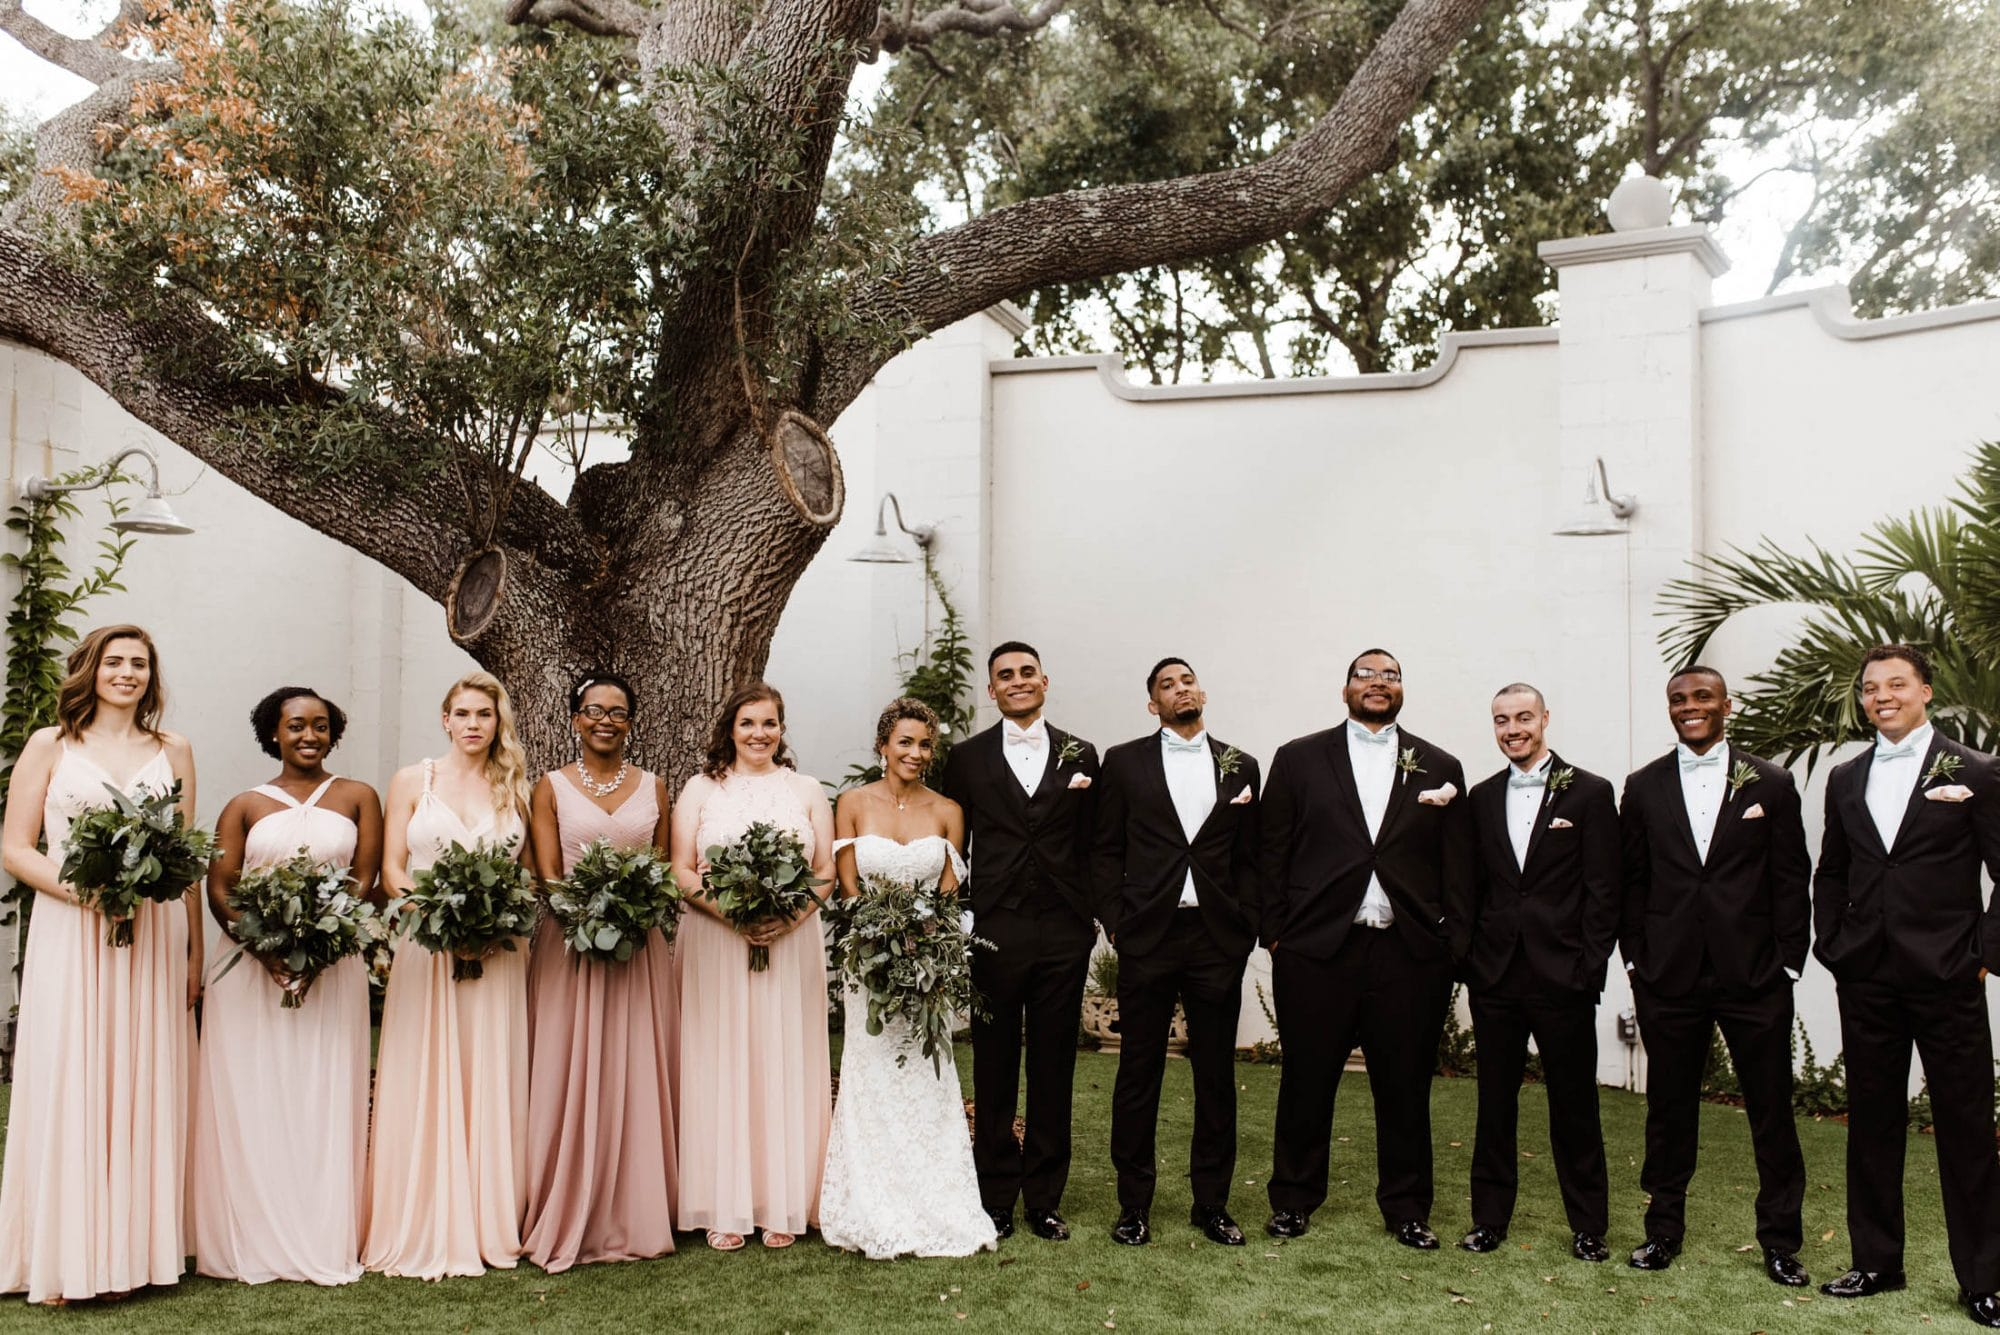 Josie Brooks Photography - wedding party lined up in front of old oak tree